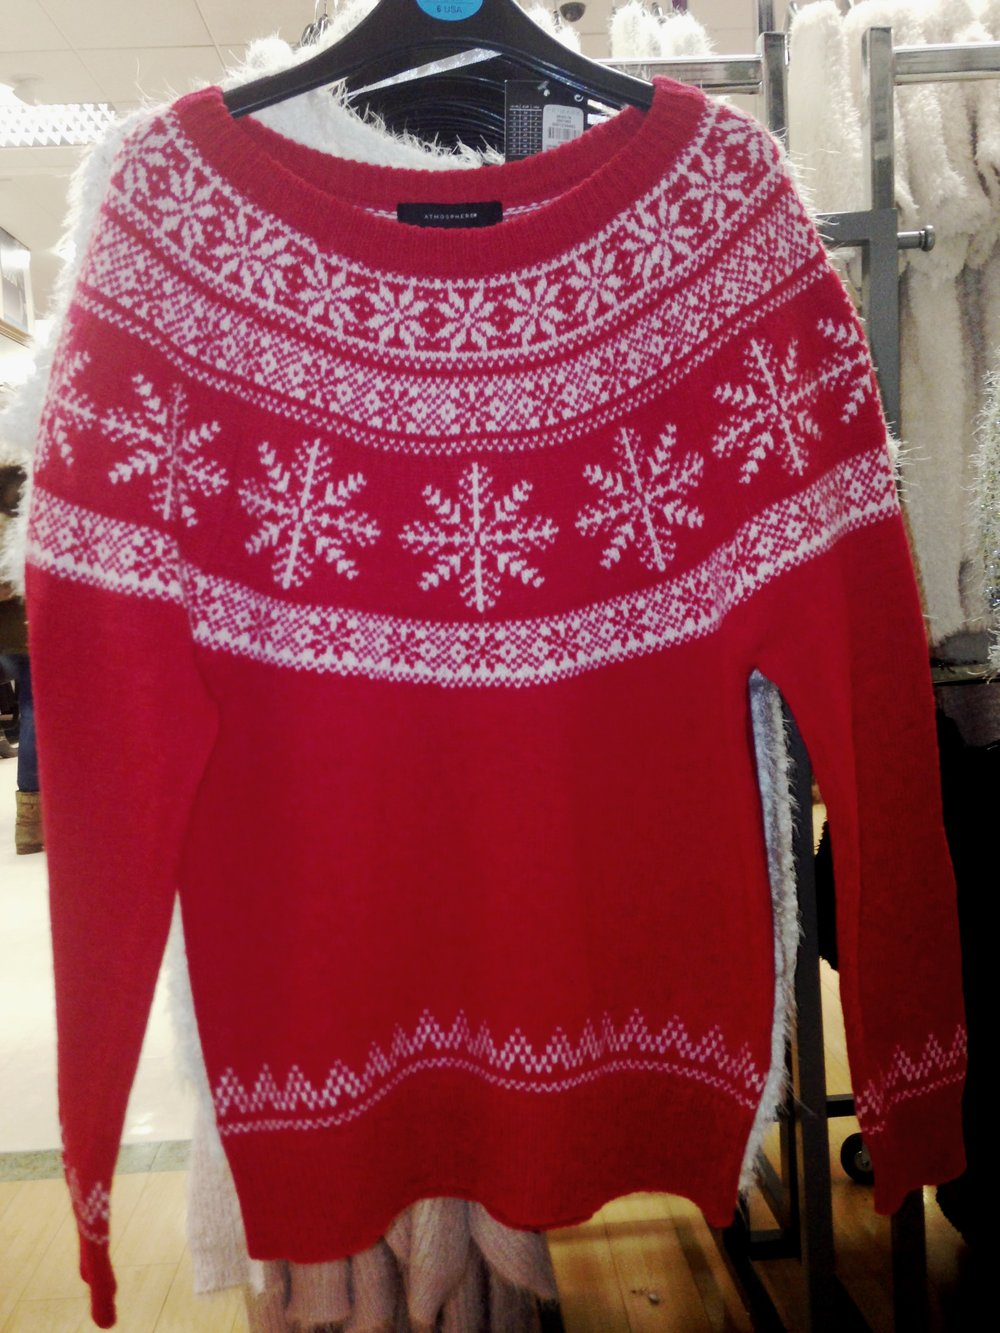 My favourite type sweater. This traditional 100% wool xmas sweater is amazing value at only €18.00. BEST BUY!